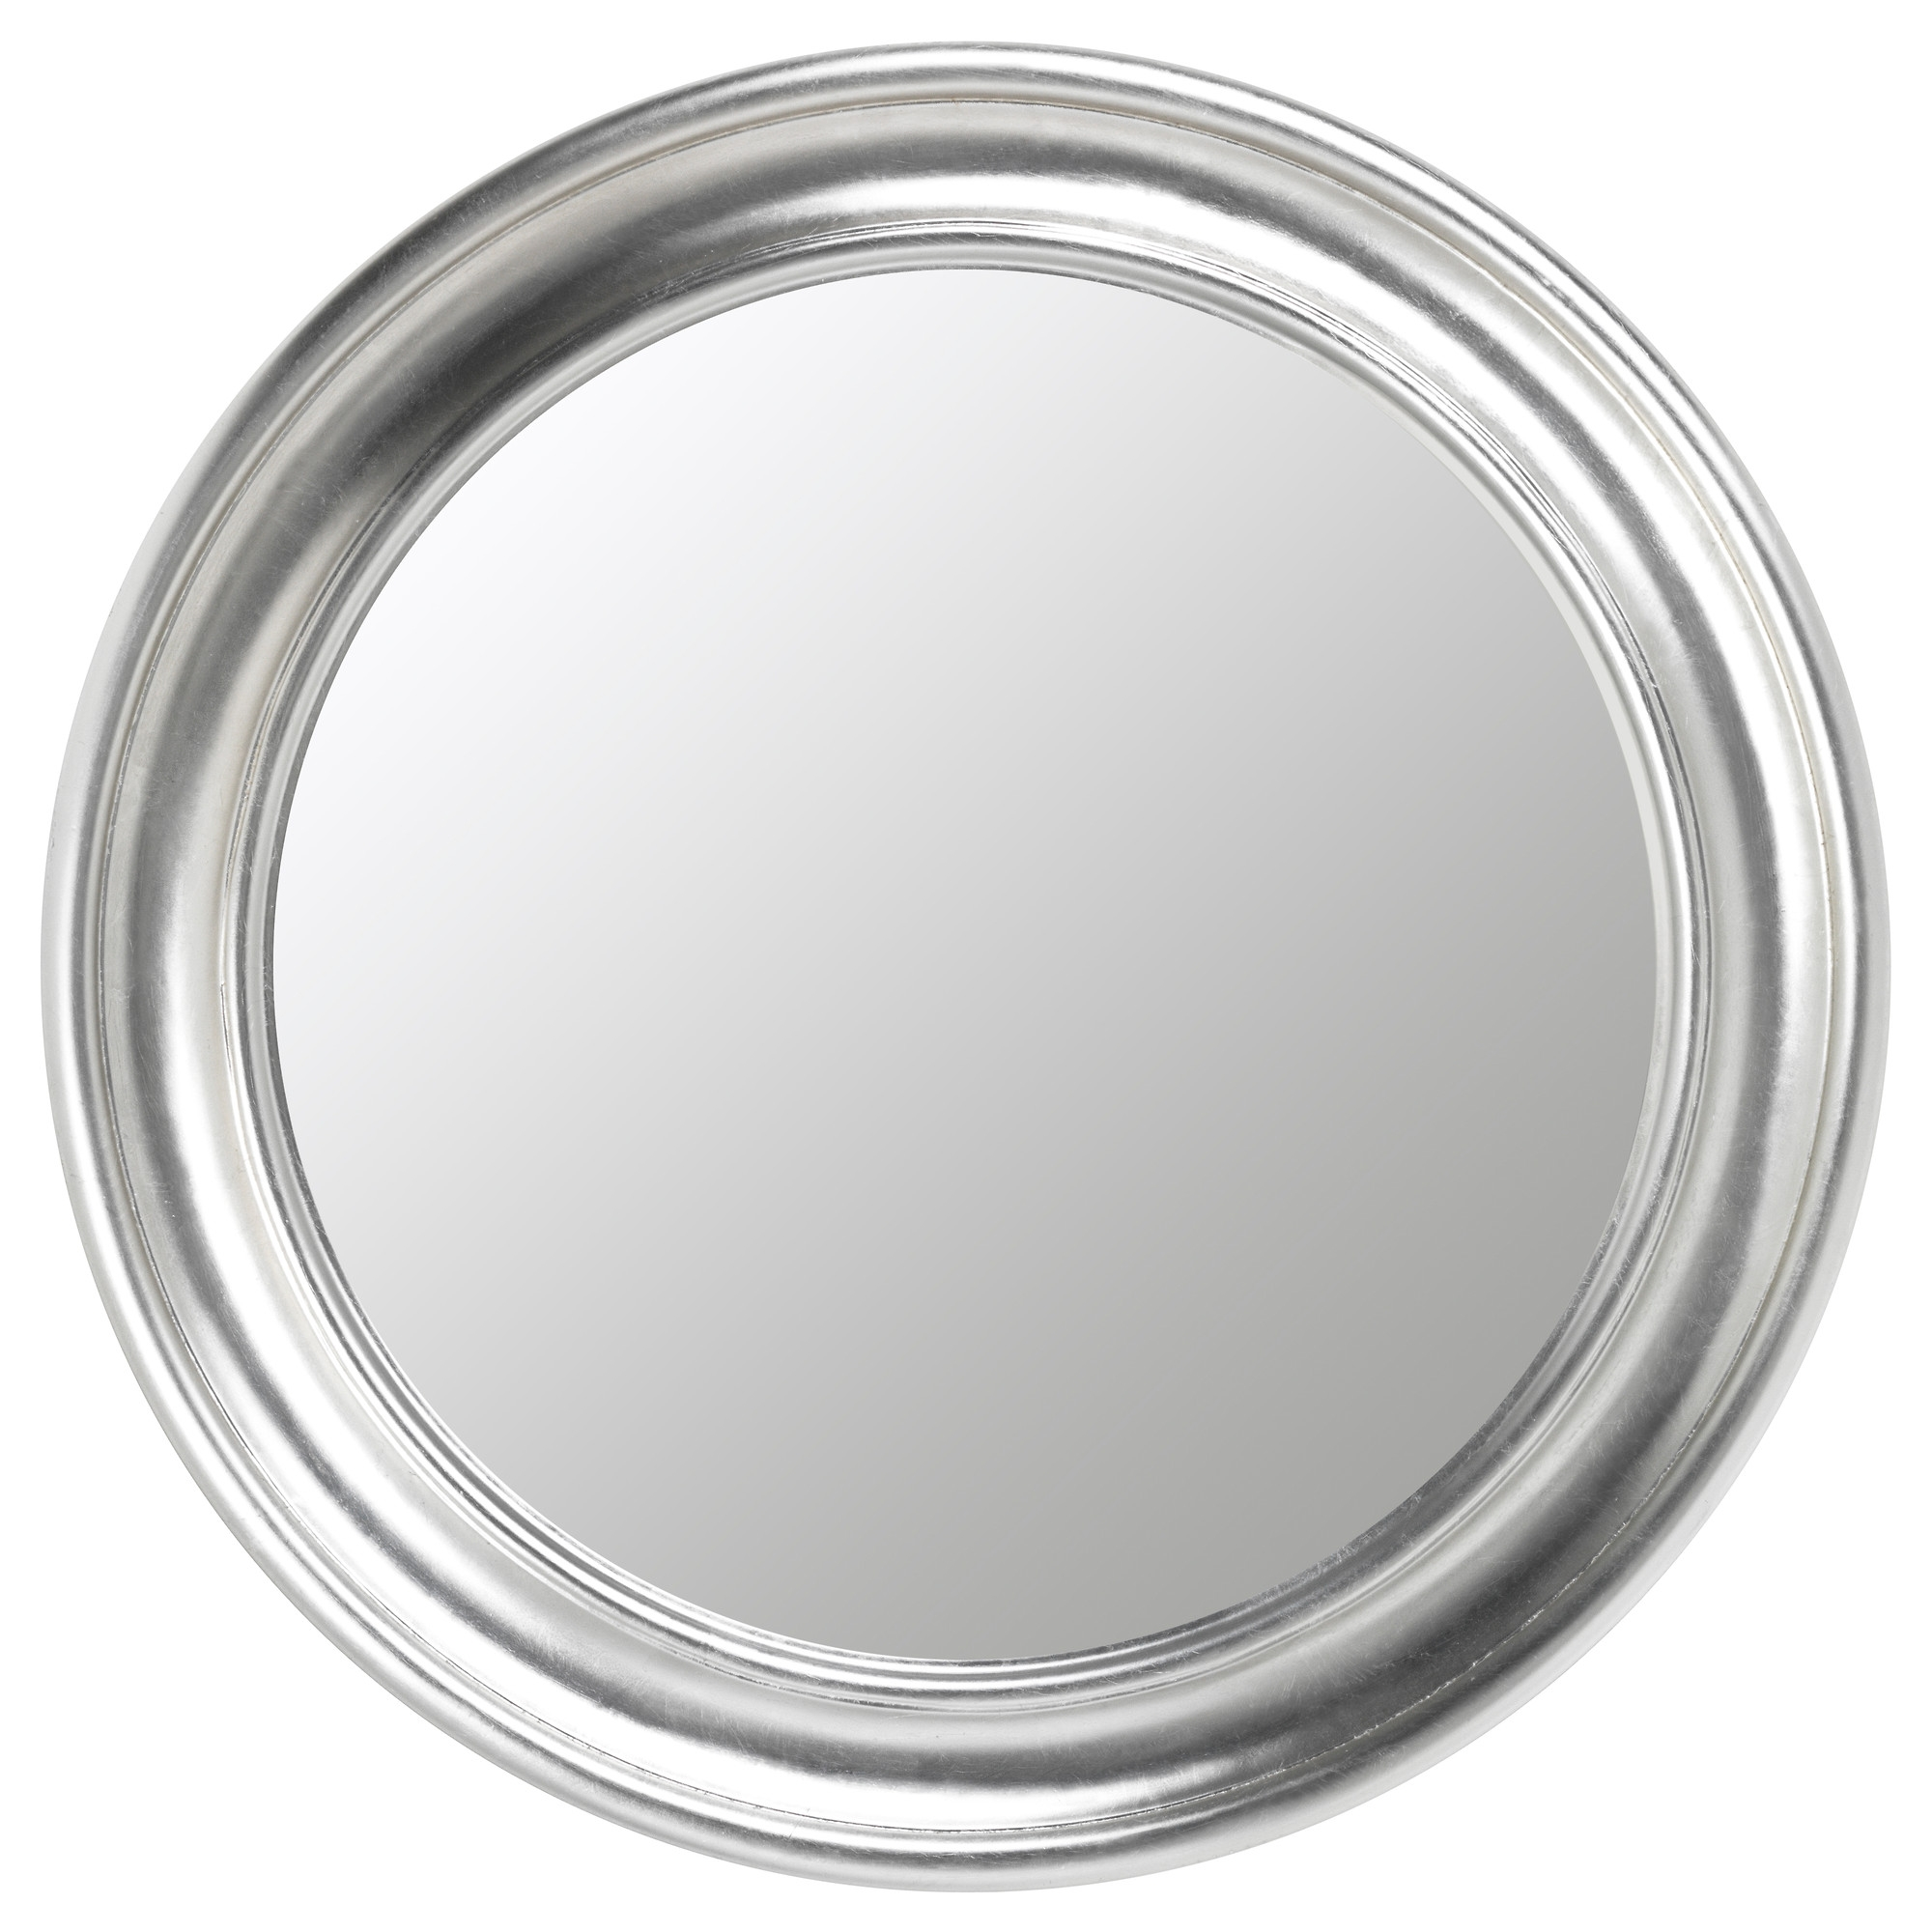 Songe Mirror Ikea Ikea Pinterest Bedrooms Intended For Silver Round Mirrors (View 9 of 15)